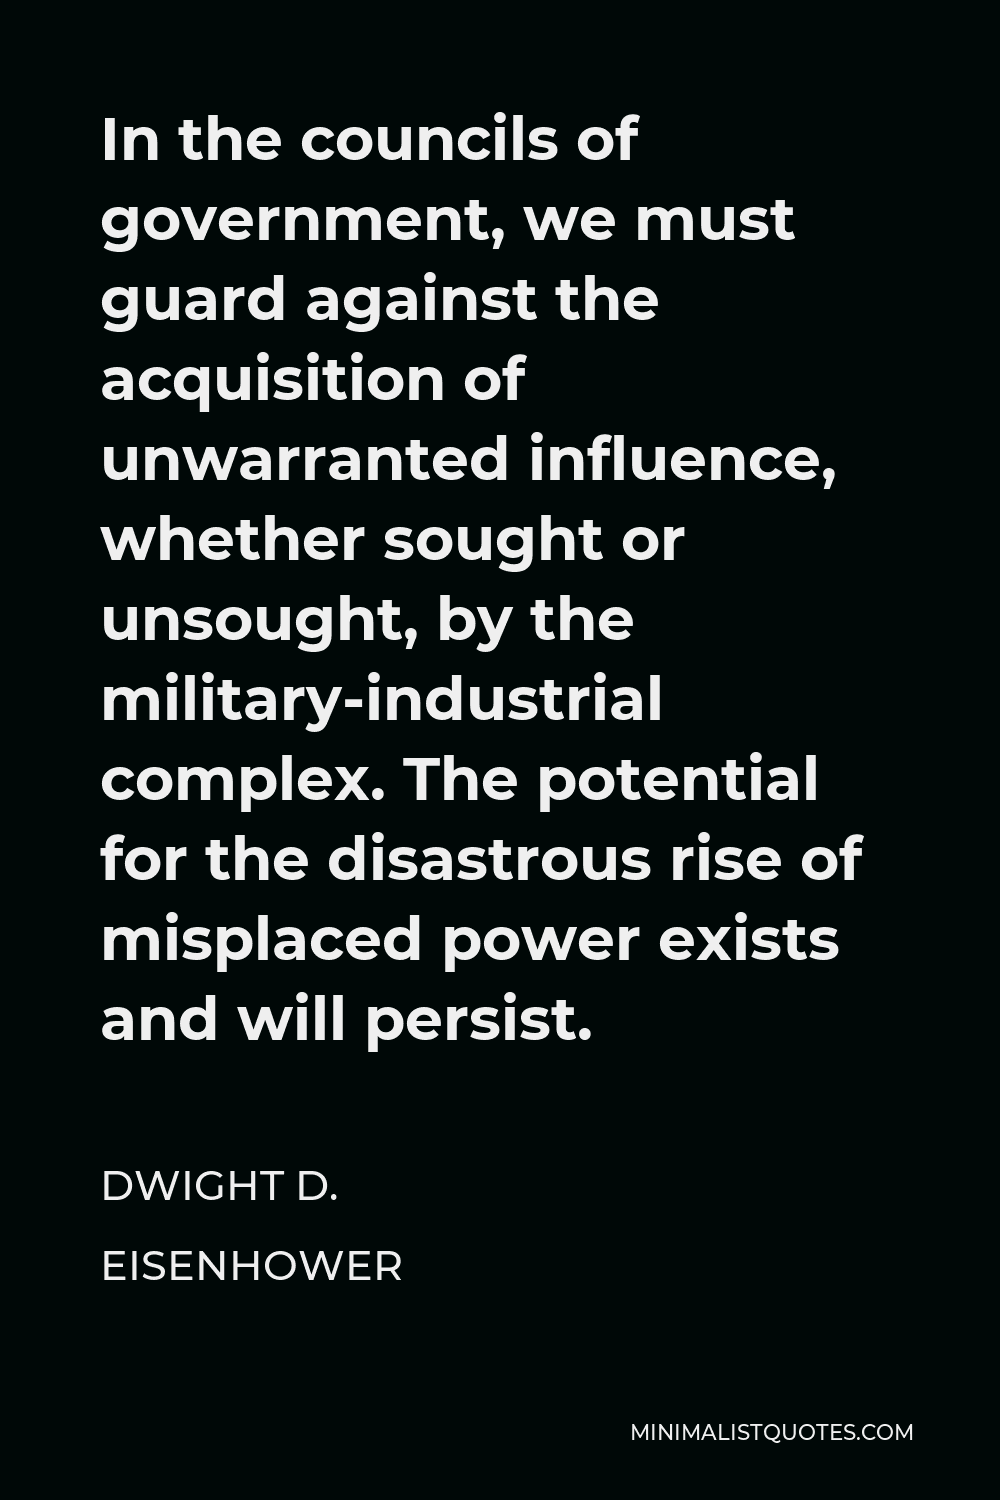 Dwight D. Eisenhower Quote - In the councils of government, we must guard against the acquisition of unwarranted influence, whether sought or unsought, by the military-industrial complex. The potential for the disastrous rise of misplaced power exists and will persist.